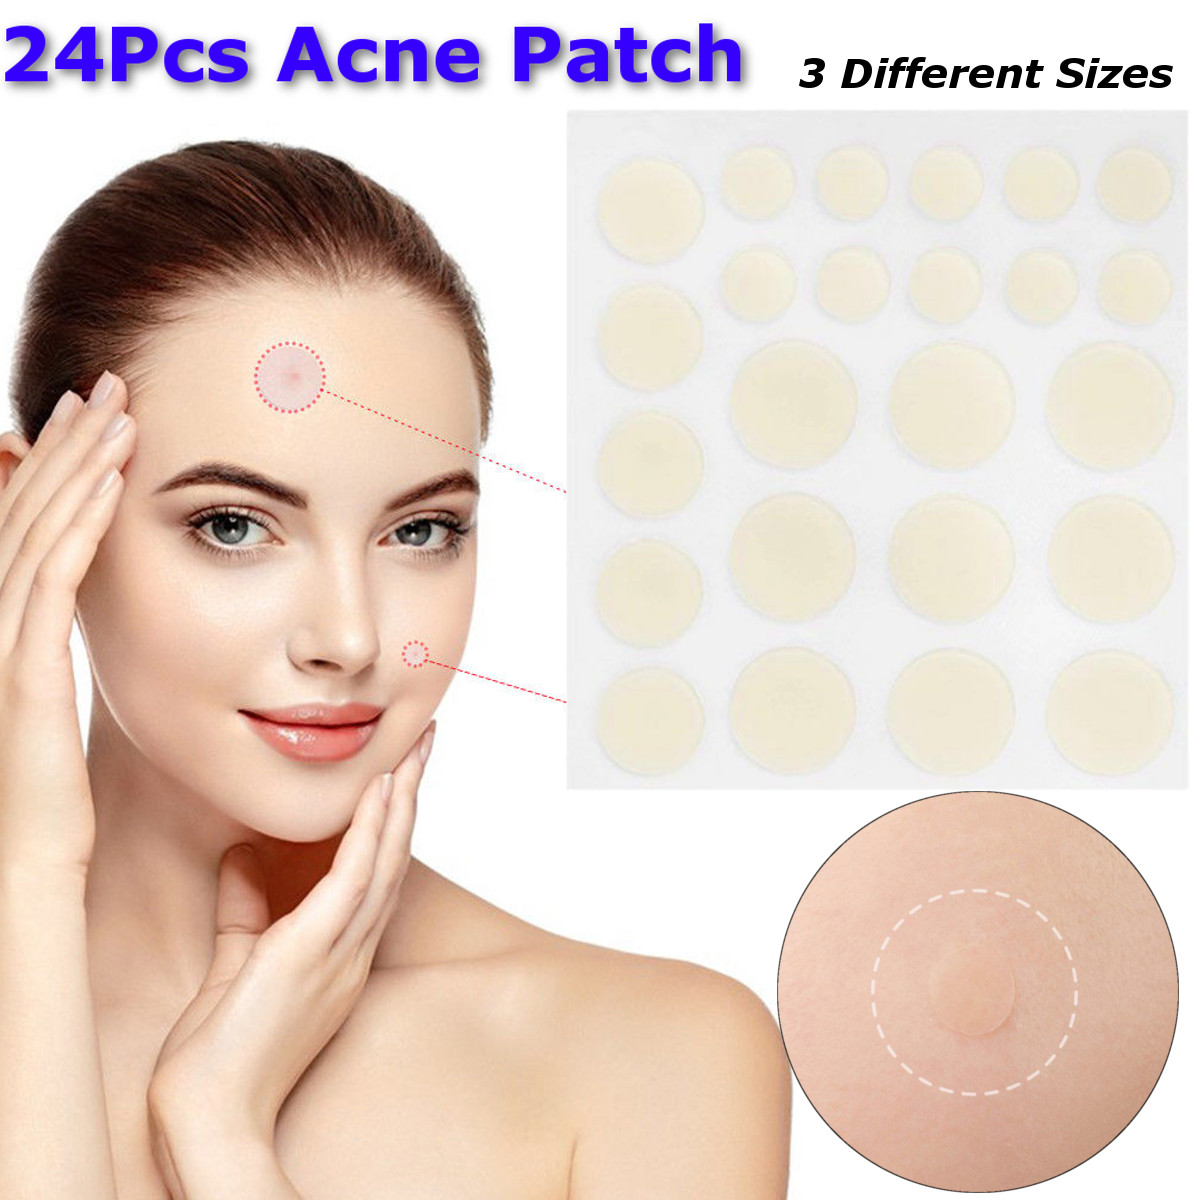 24Pcs Face Spot Scar Care Treatment Stickers Acne Patches